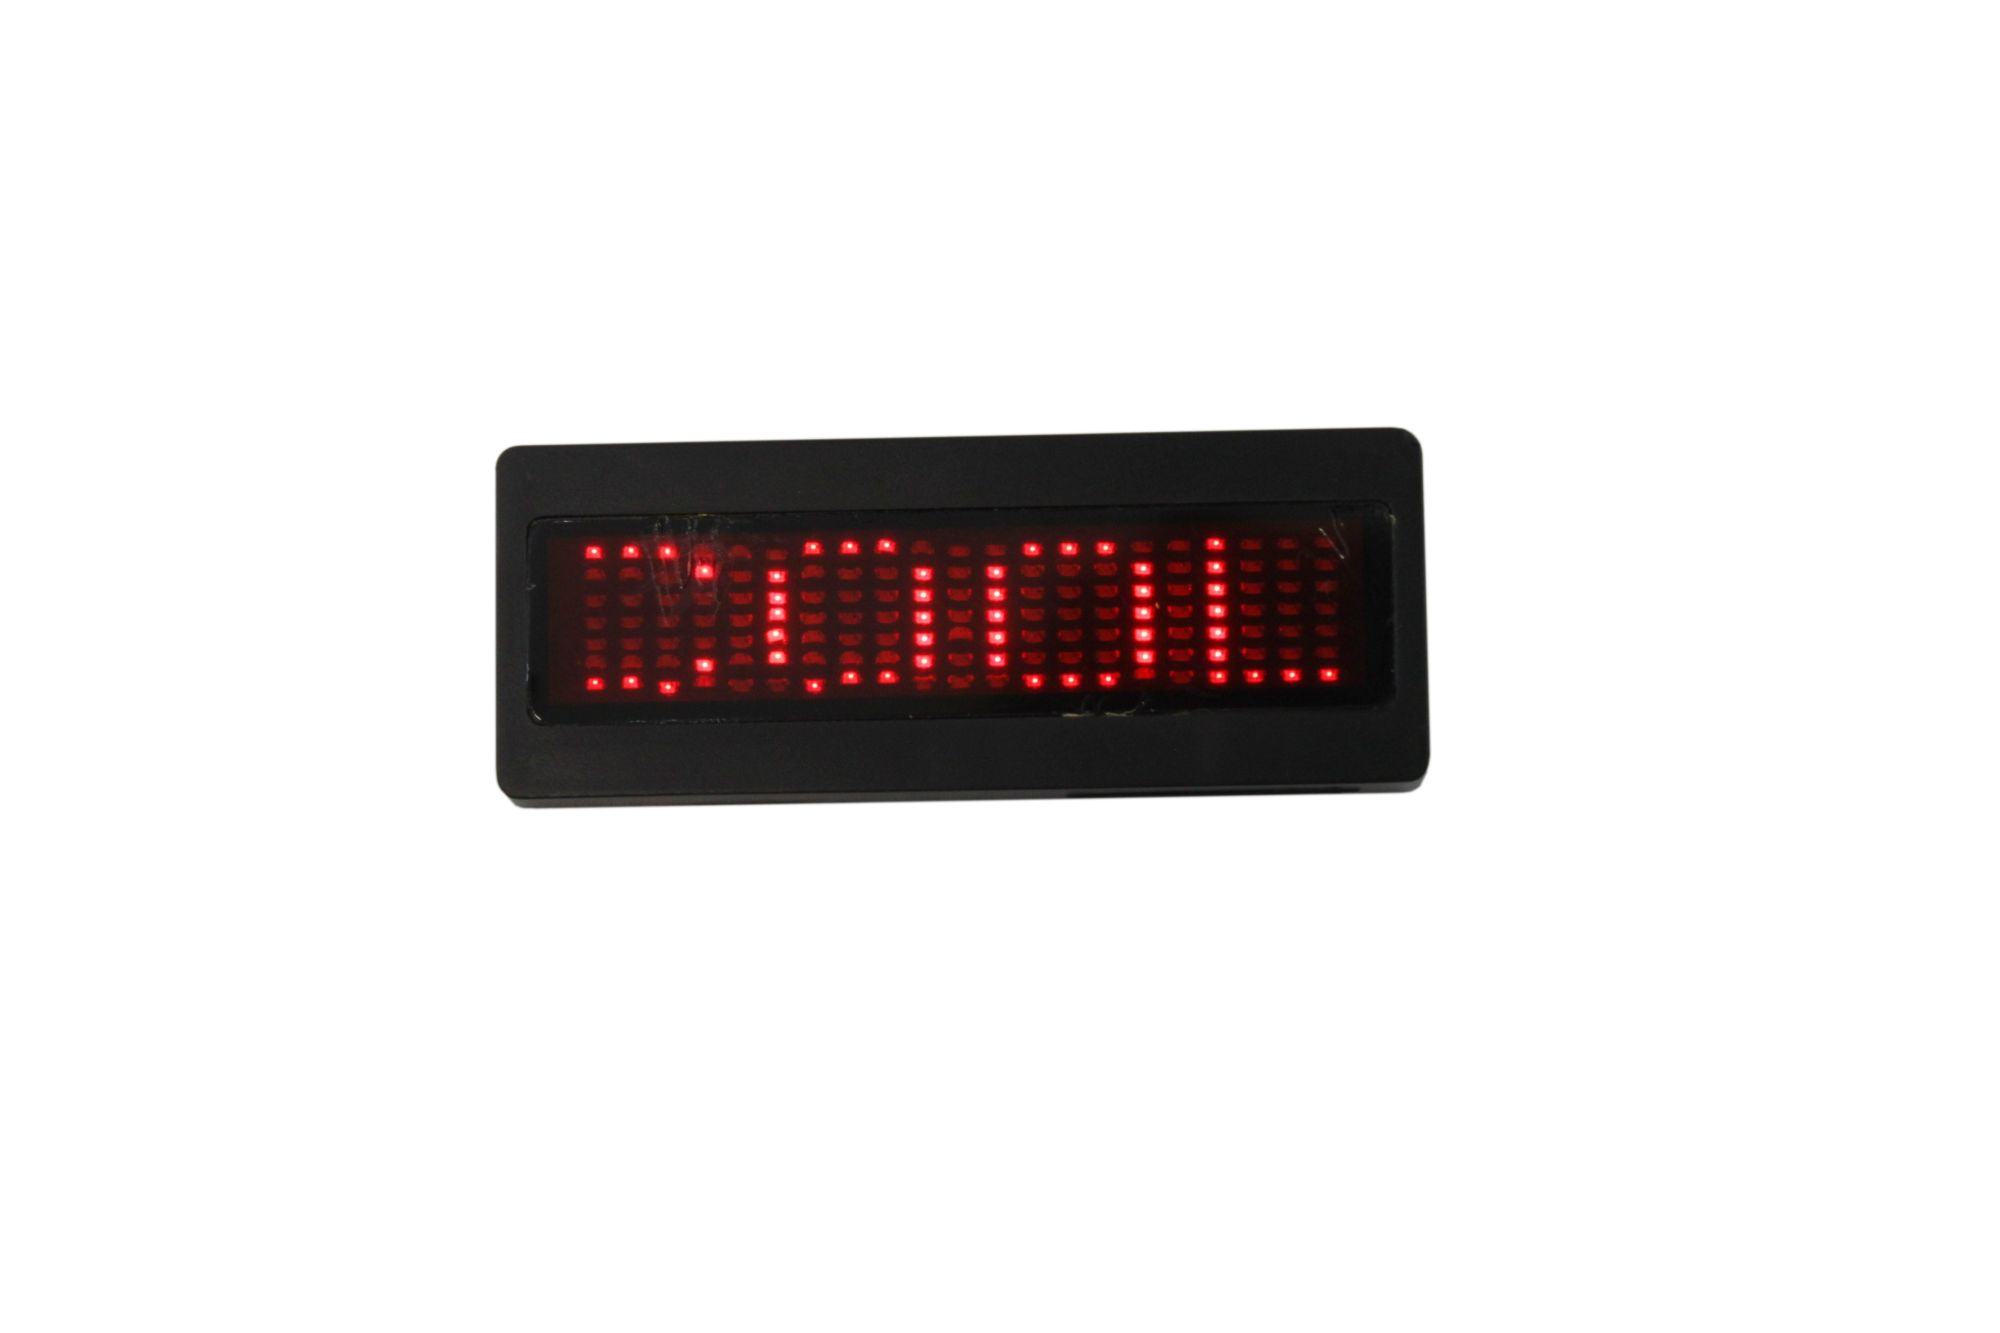 Bolan Programmable Scrolling Red LED Name Tag, Reusable Name Badge, PriceTag  ID Tag office magnetic name tags, Digital Sign